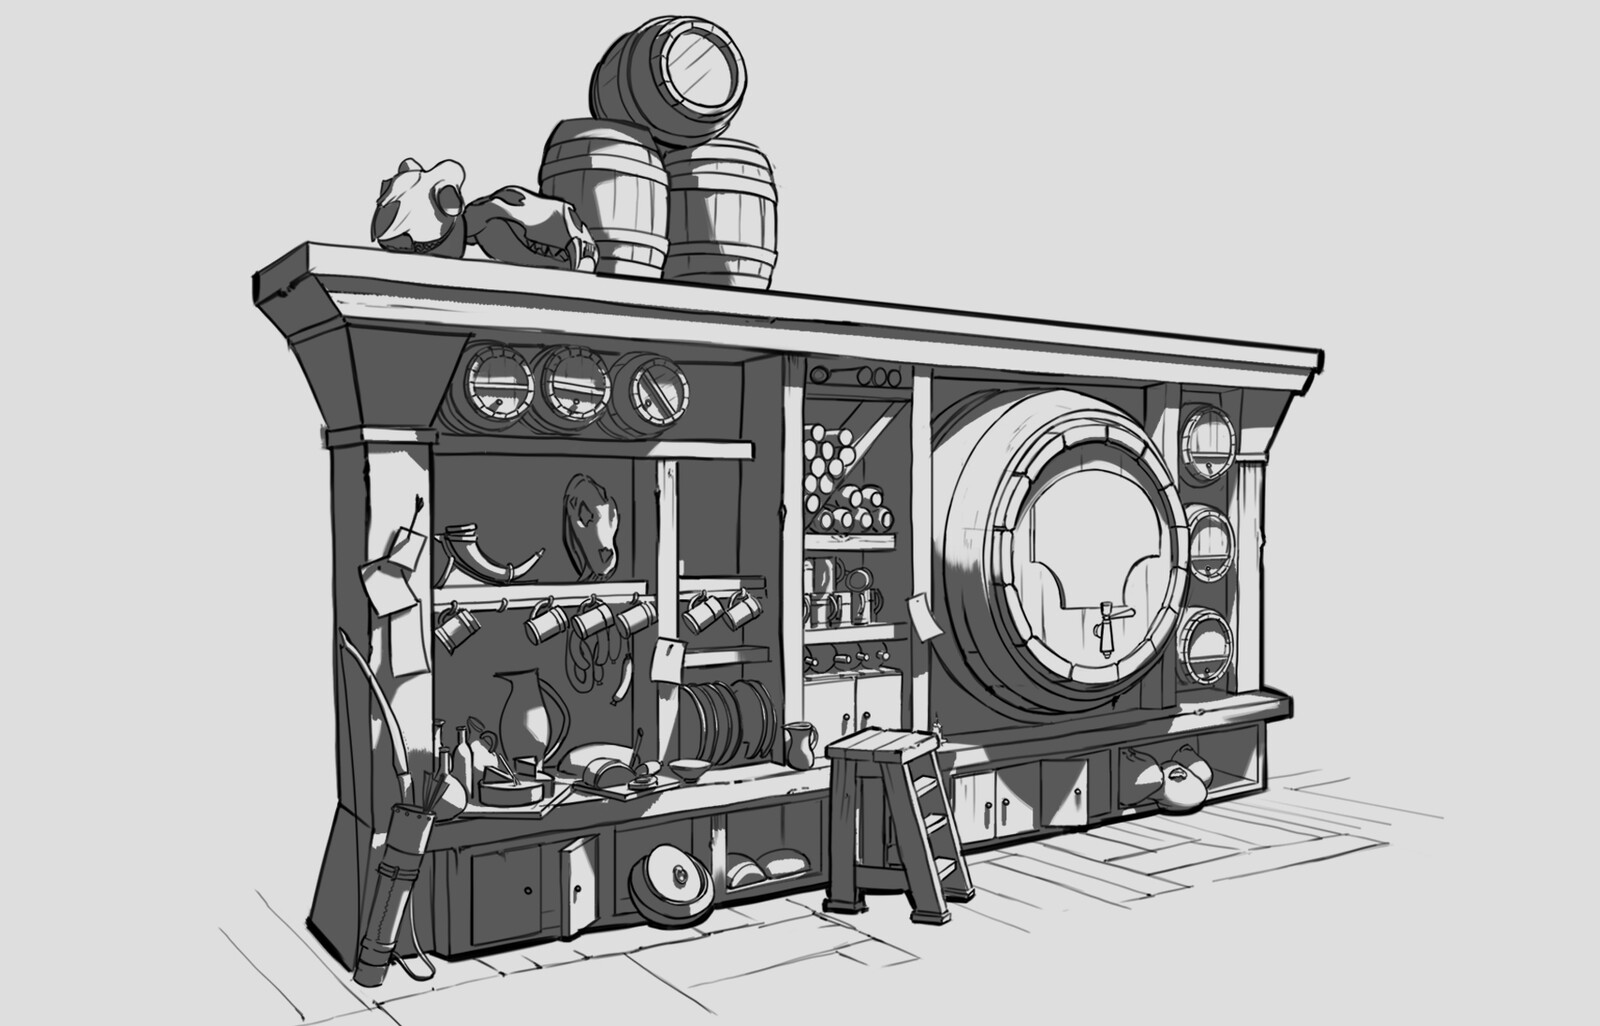 Sketch of the area behind the bar.